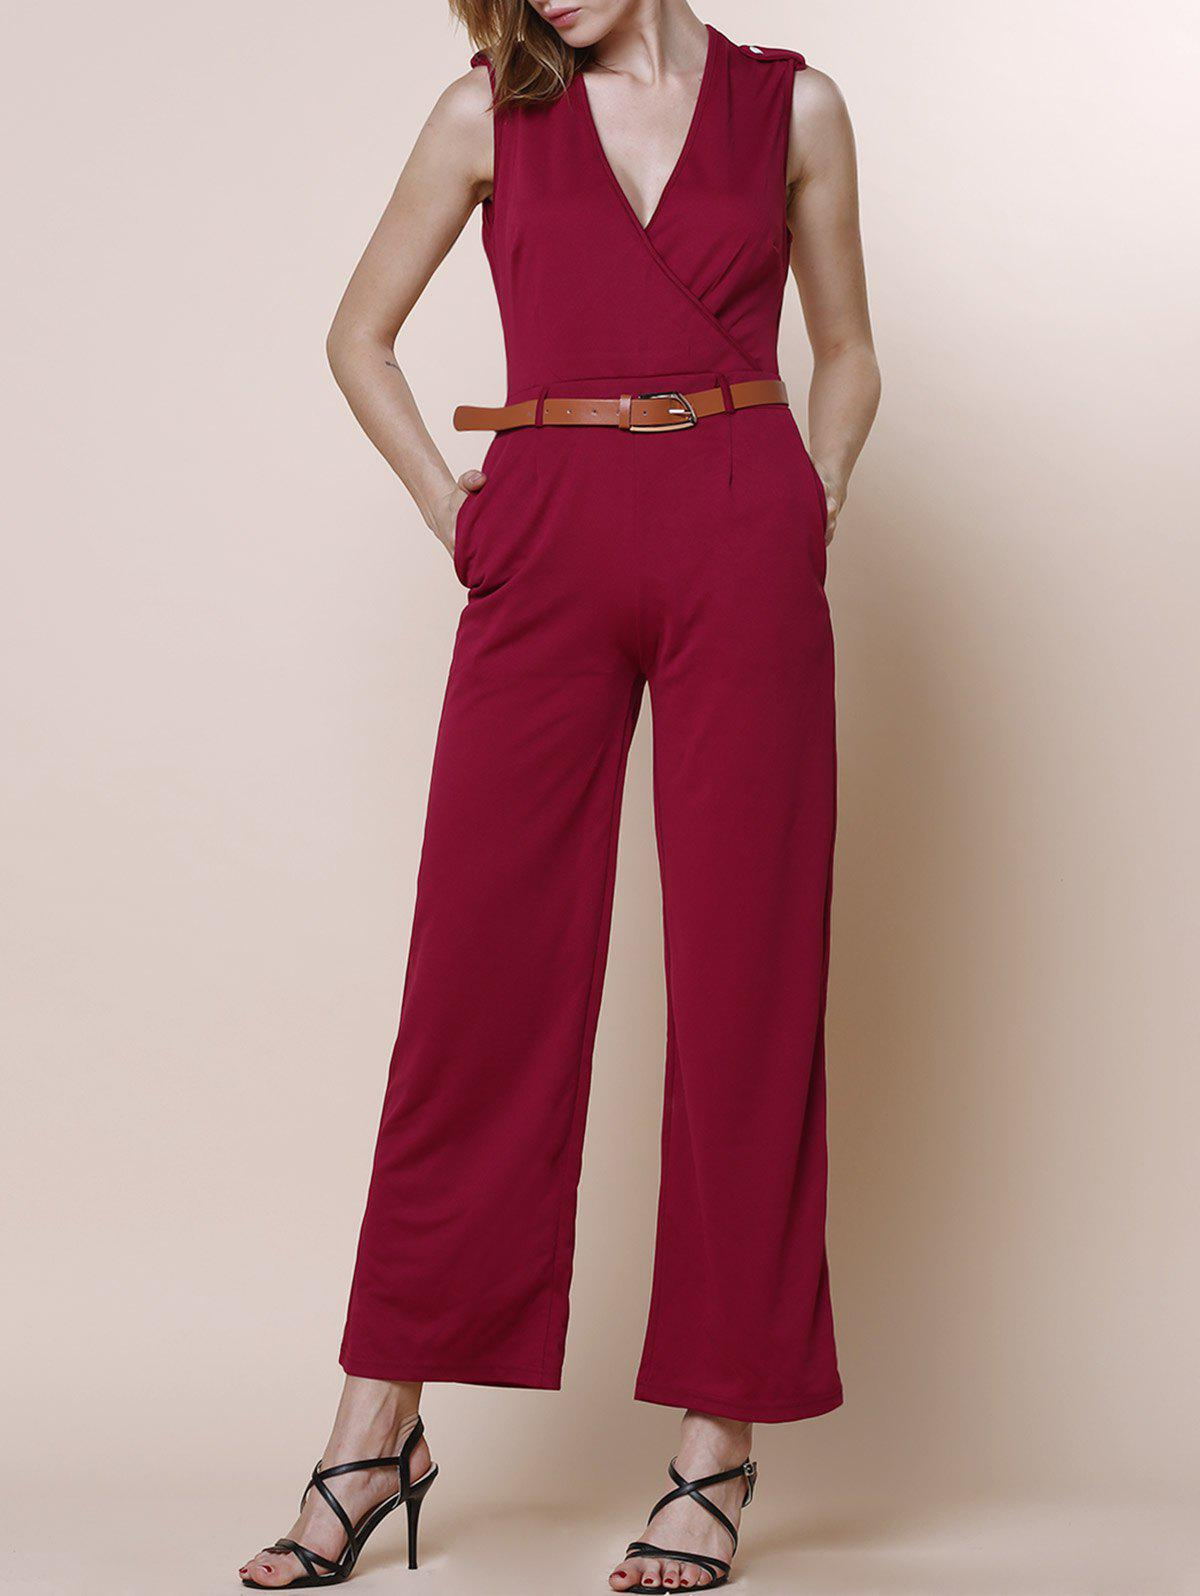 V-Neck Sleeveless Pure Color Jumpsuit For Women - RED S